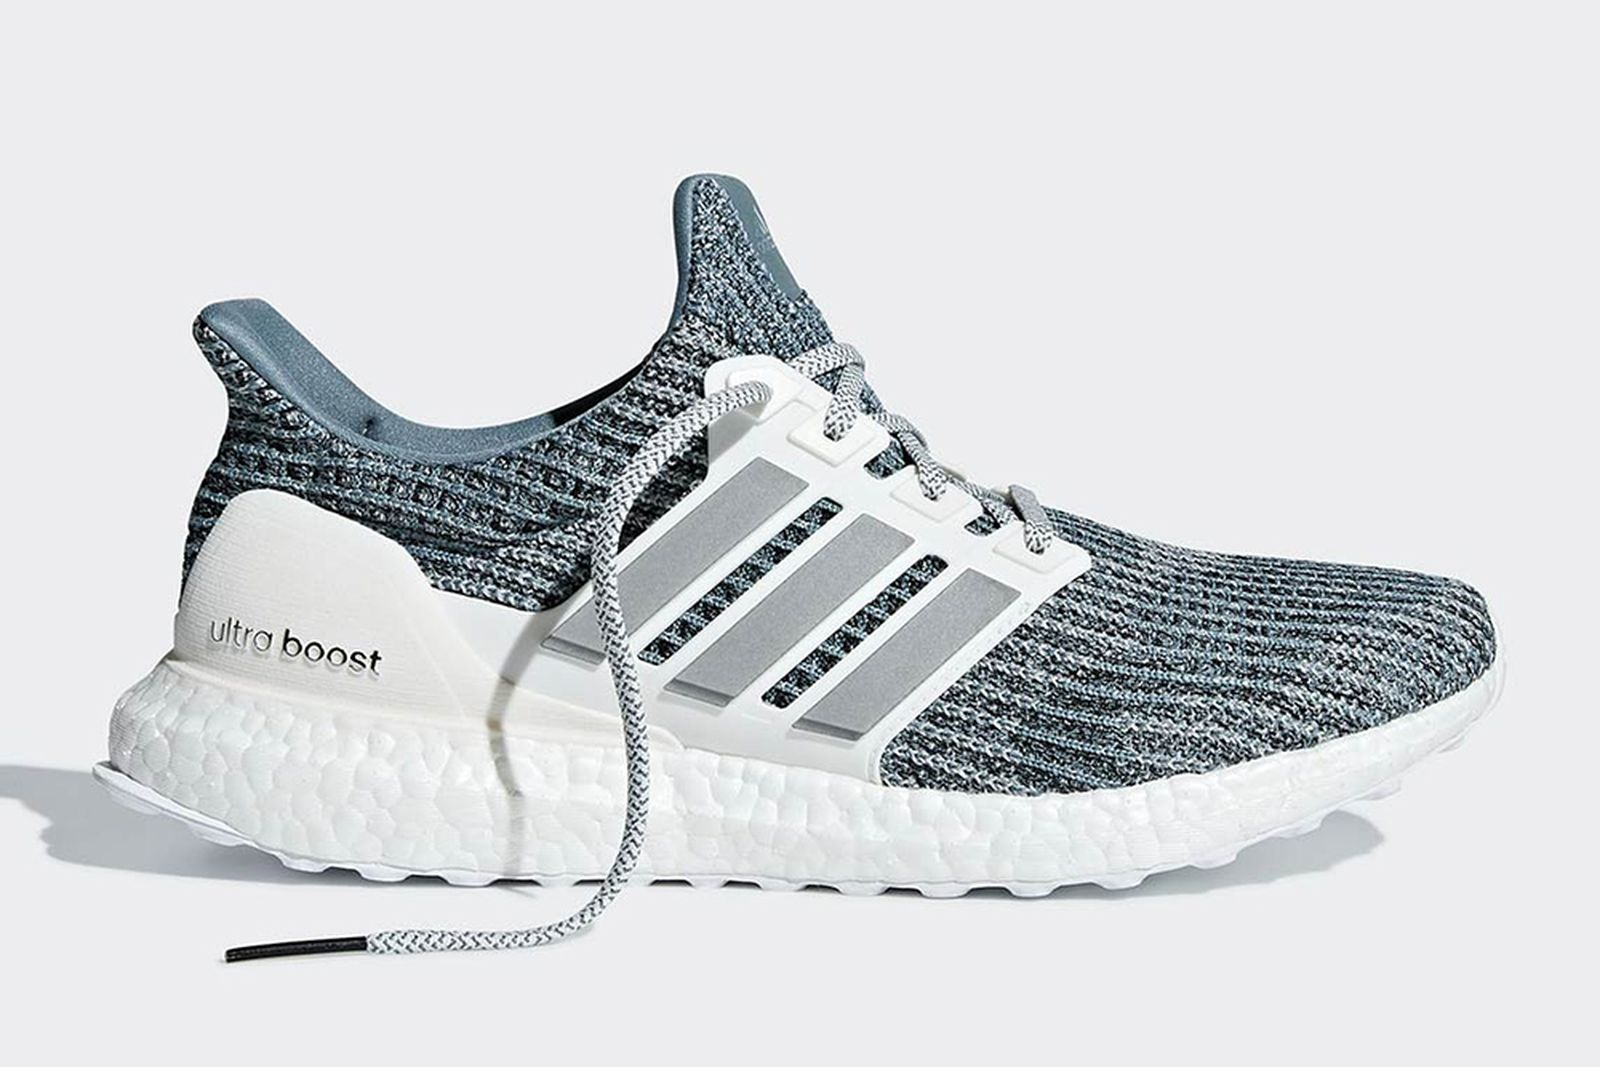 Parley x adidas Ultra Boost Fall 2018: Release, Price, & Info